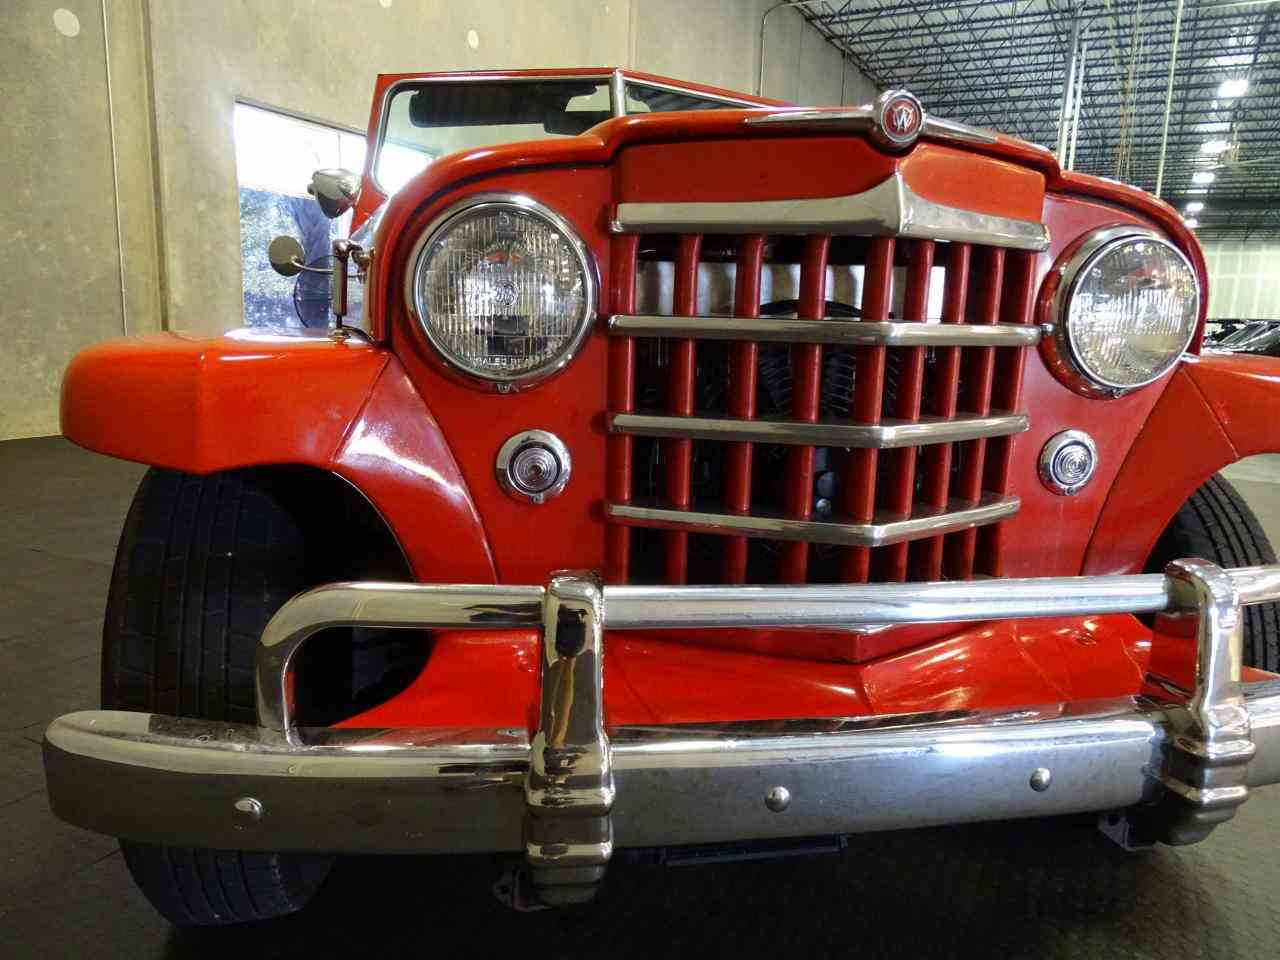 Large Picture of Classic 1950 Jeep Willys located in Ruskin Florida - $14,995.00 Offered by Gateway Classic Cars - Tampa - LDUL